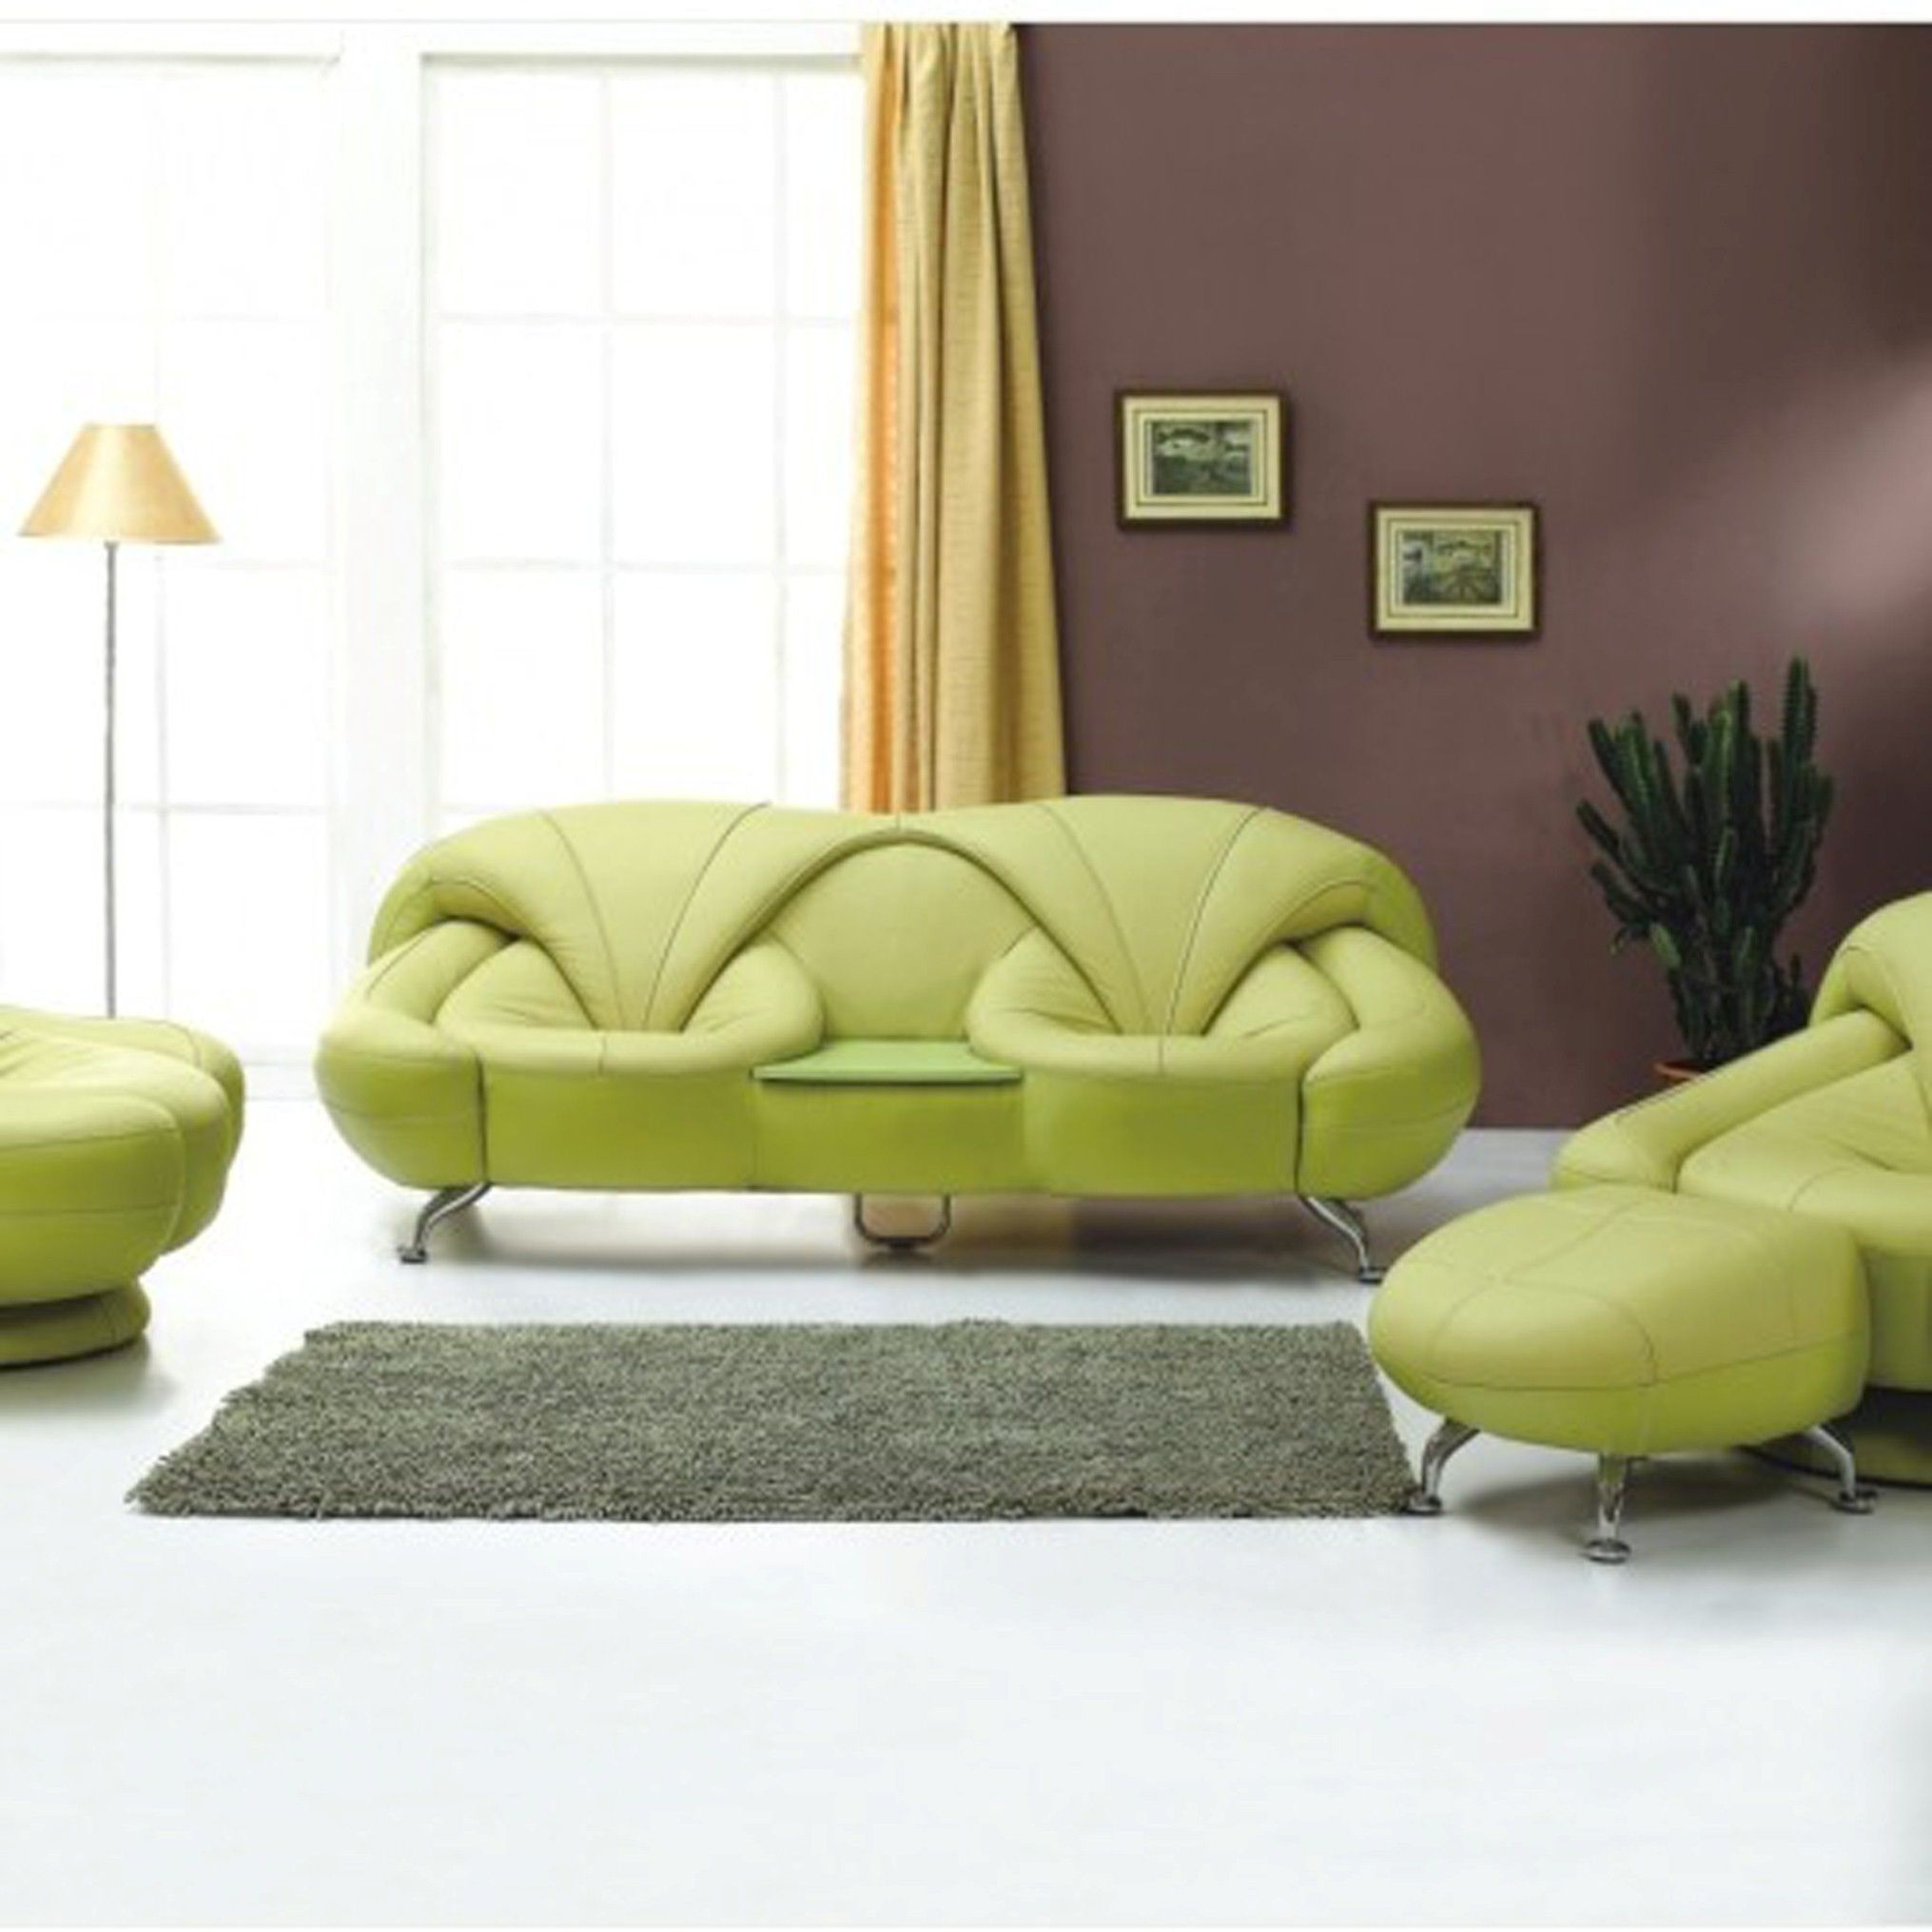 excellent sofa mart sectional gallery-Awesome sofa Mart Sectional Photo